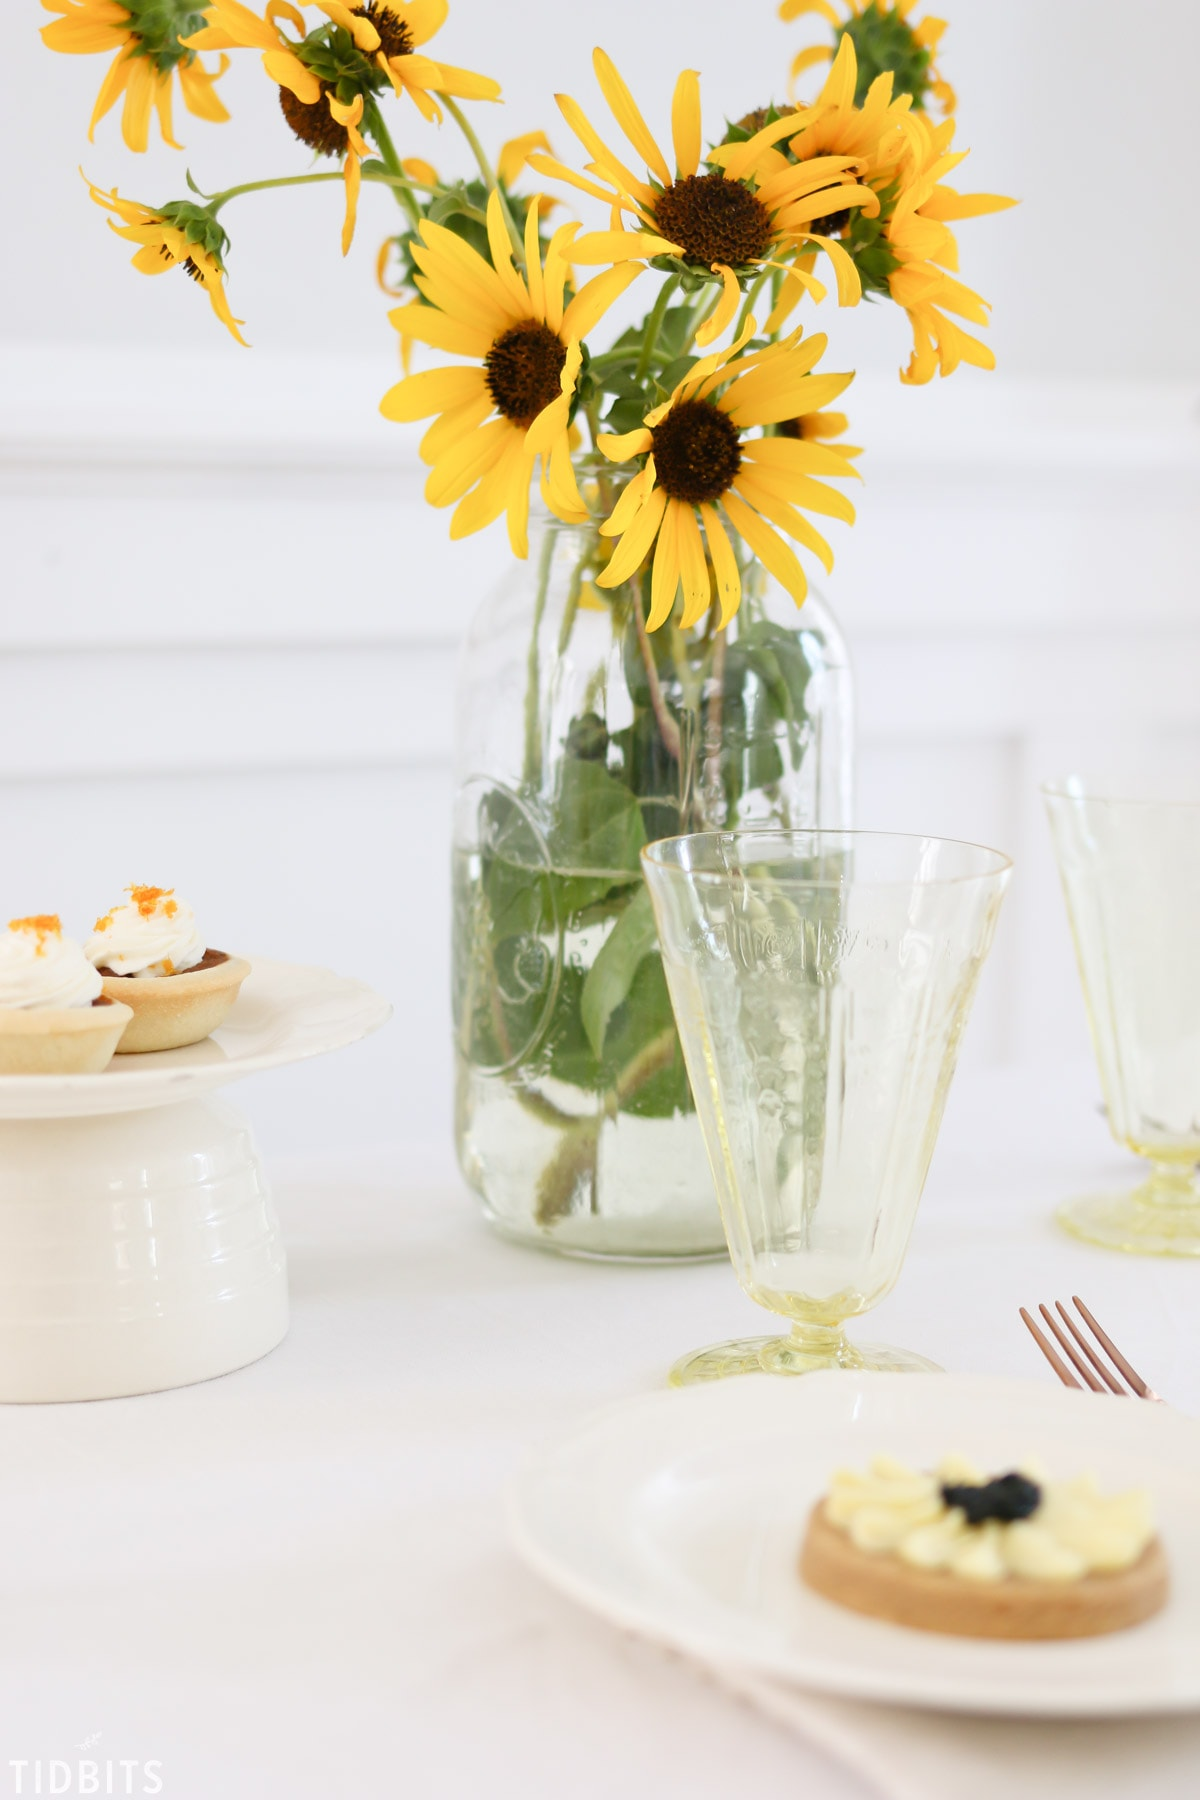 Simple Sunflower Fall Tablescape   Delight your loved ones with seasonal simplicity.